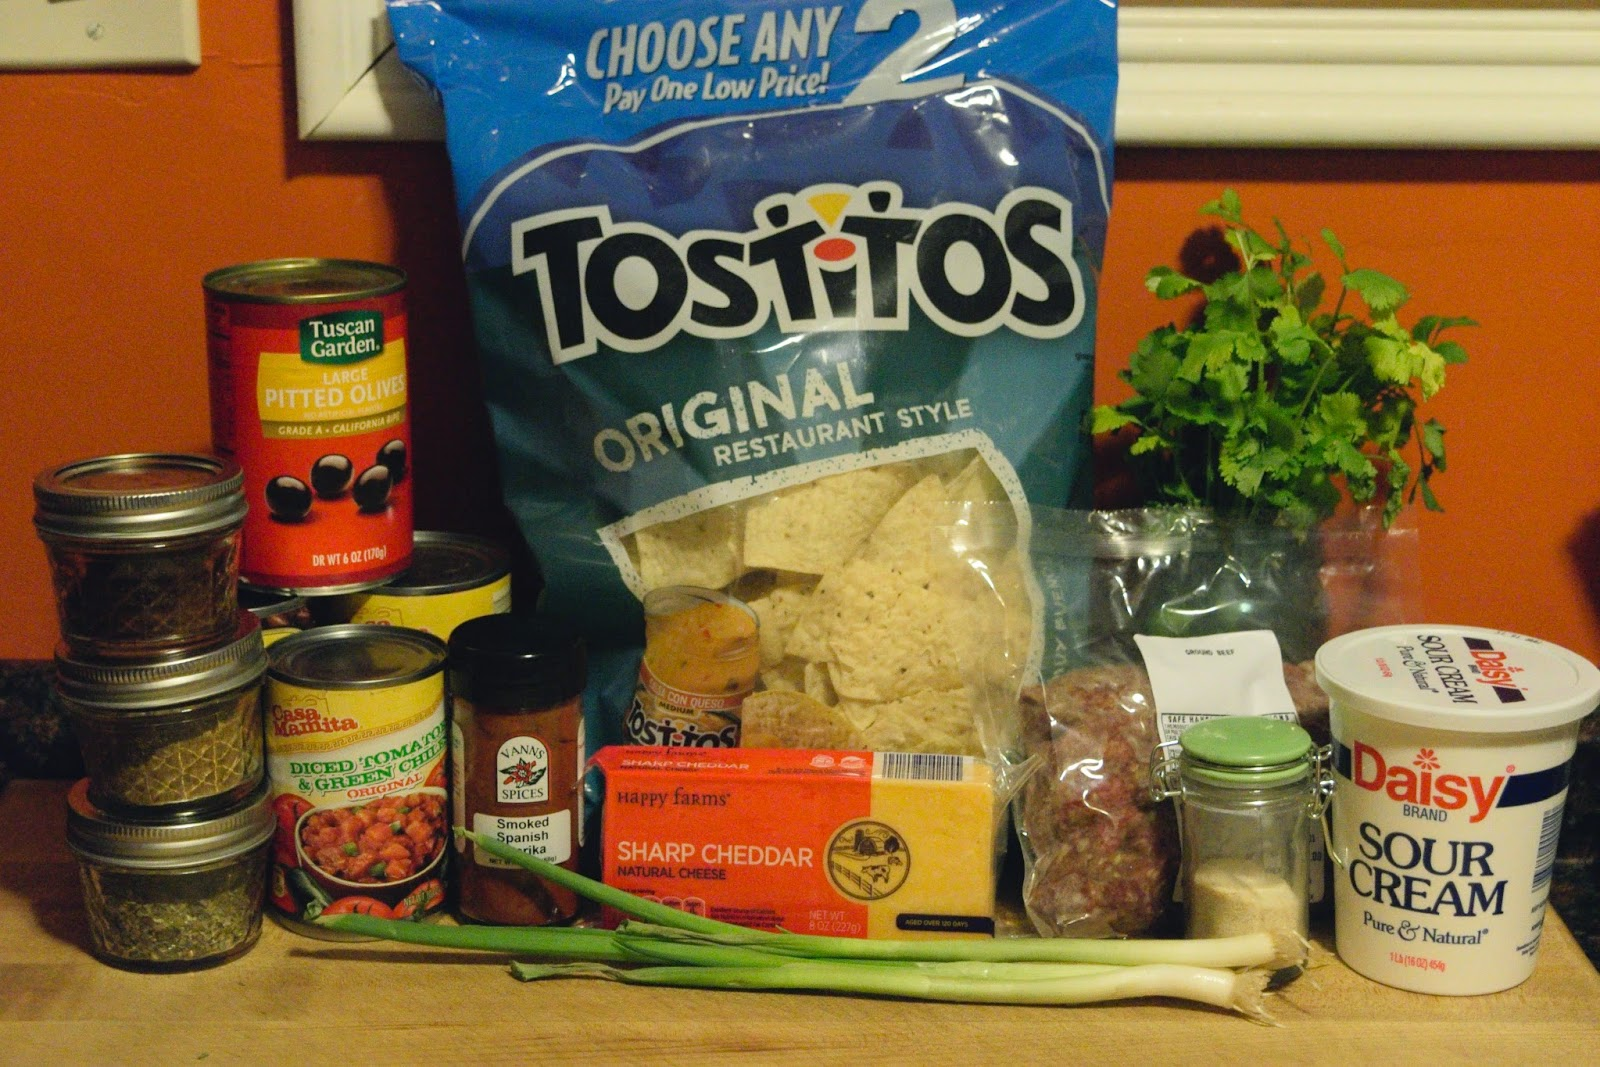 The ingredients needed for the nachos.